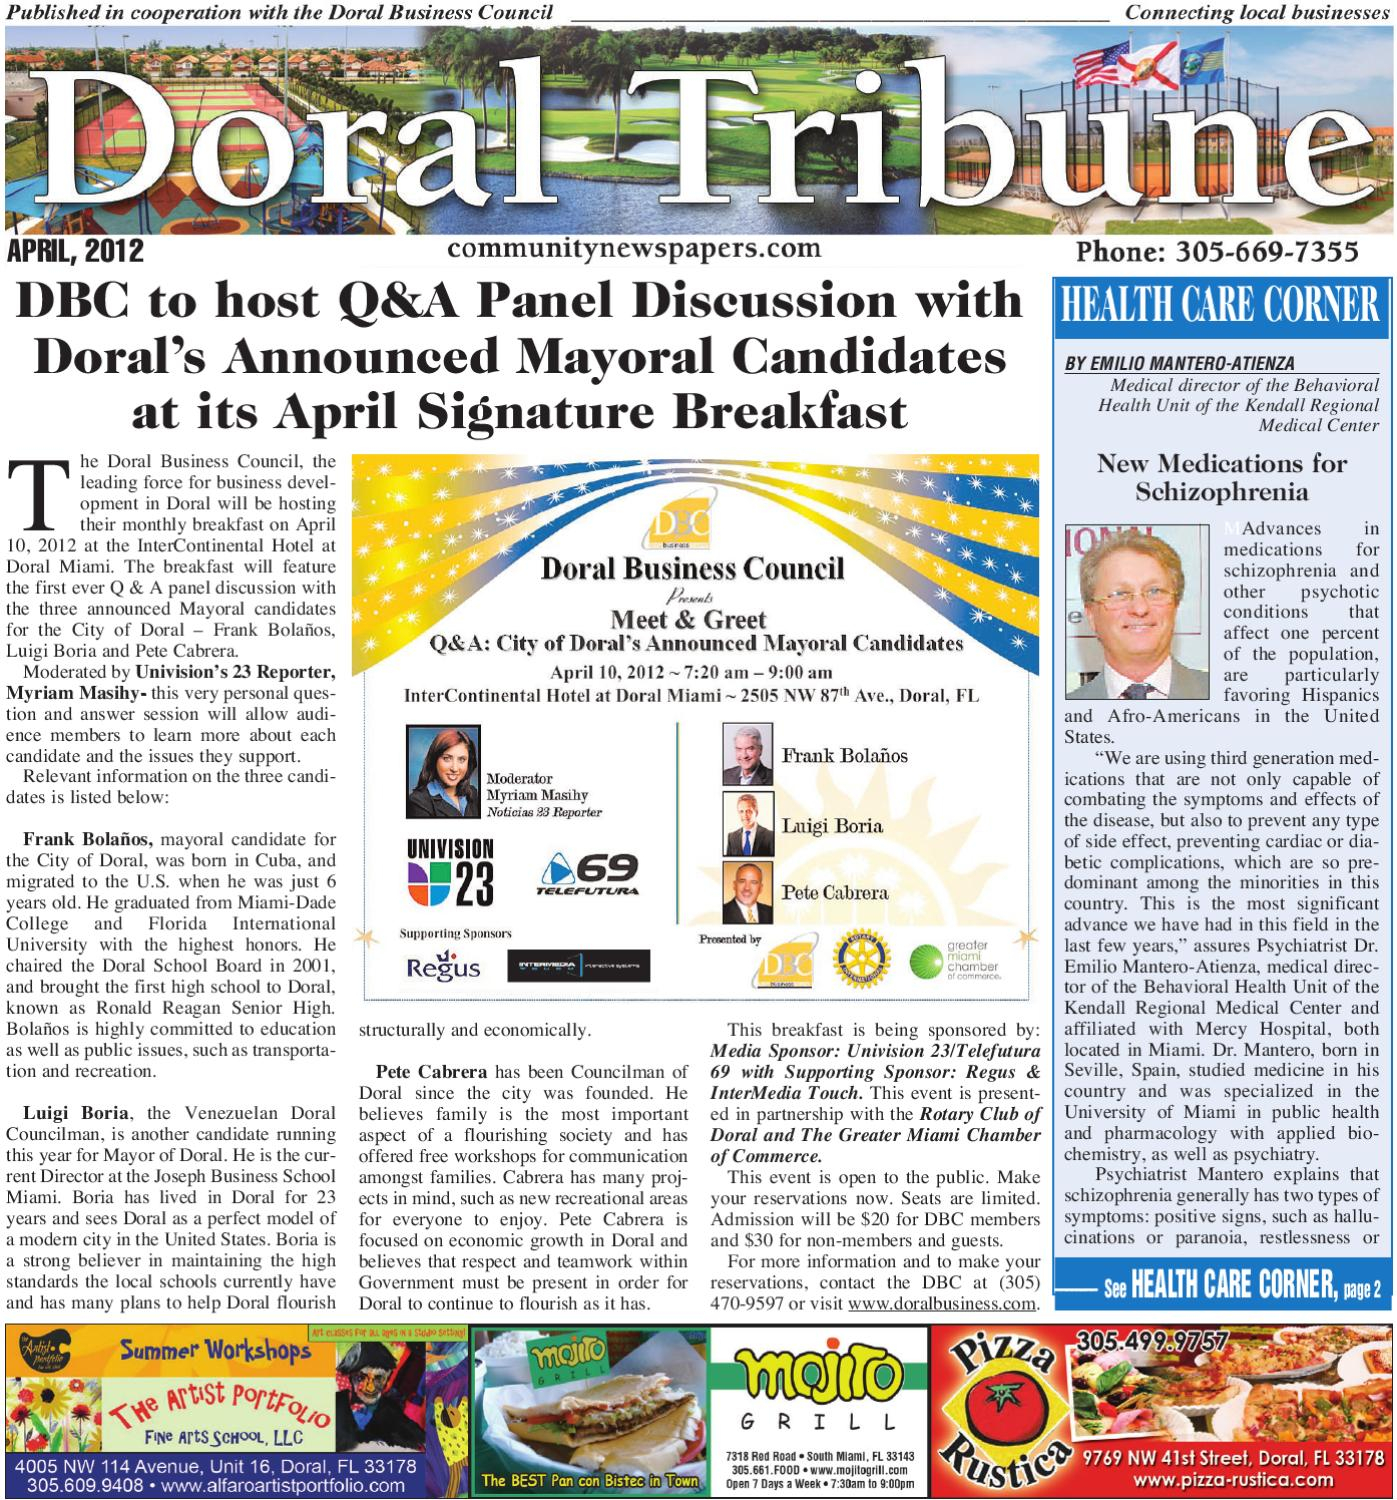 Doral Tribune April 2012Community Newspapers - Issuu Inside Miami Dade Public Schools Calendar 2021  2020